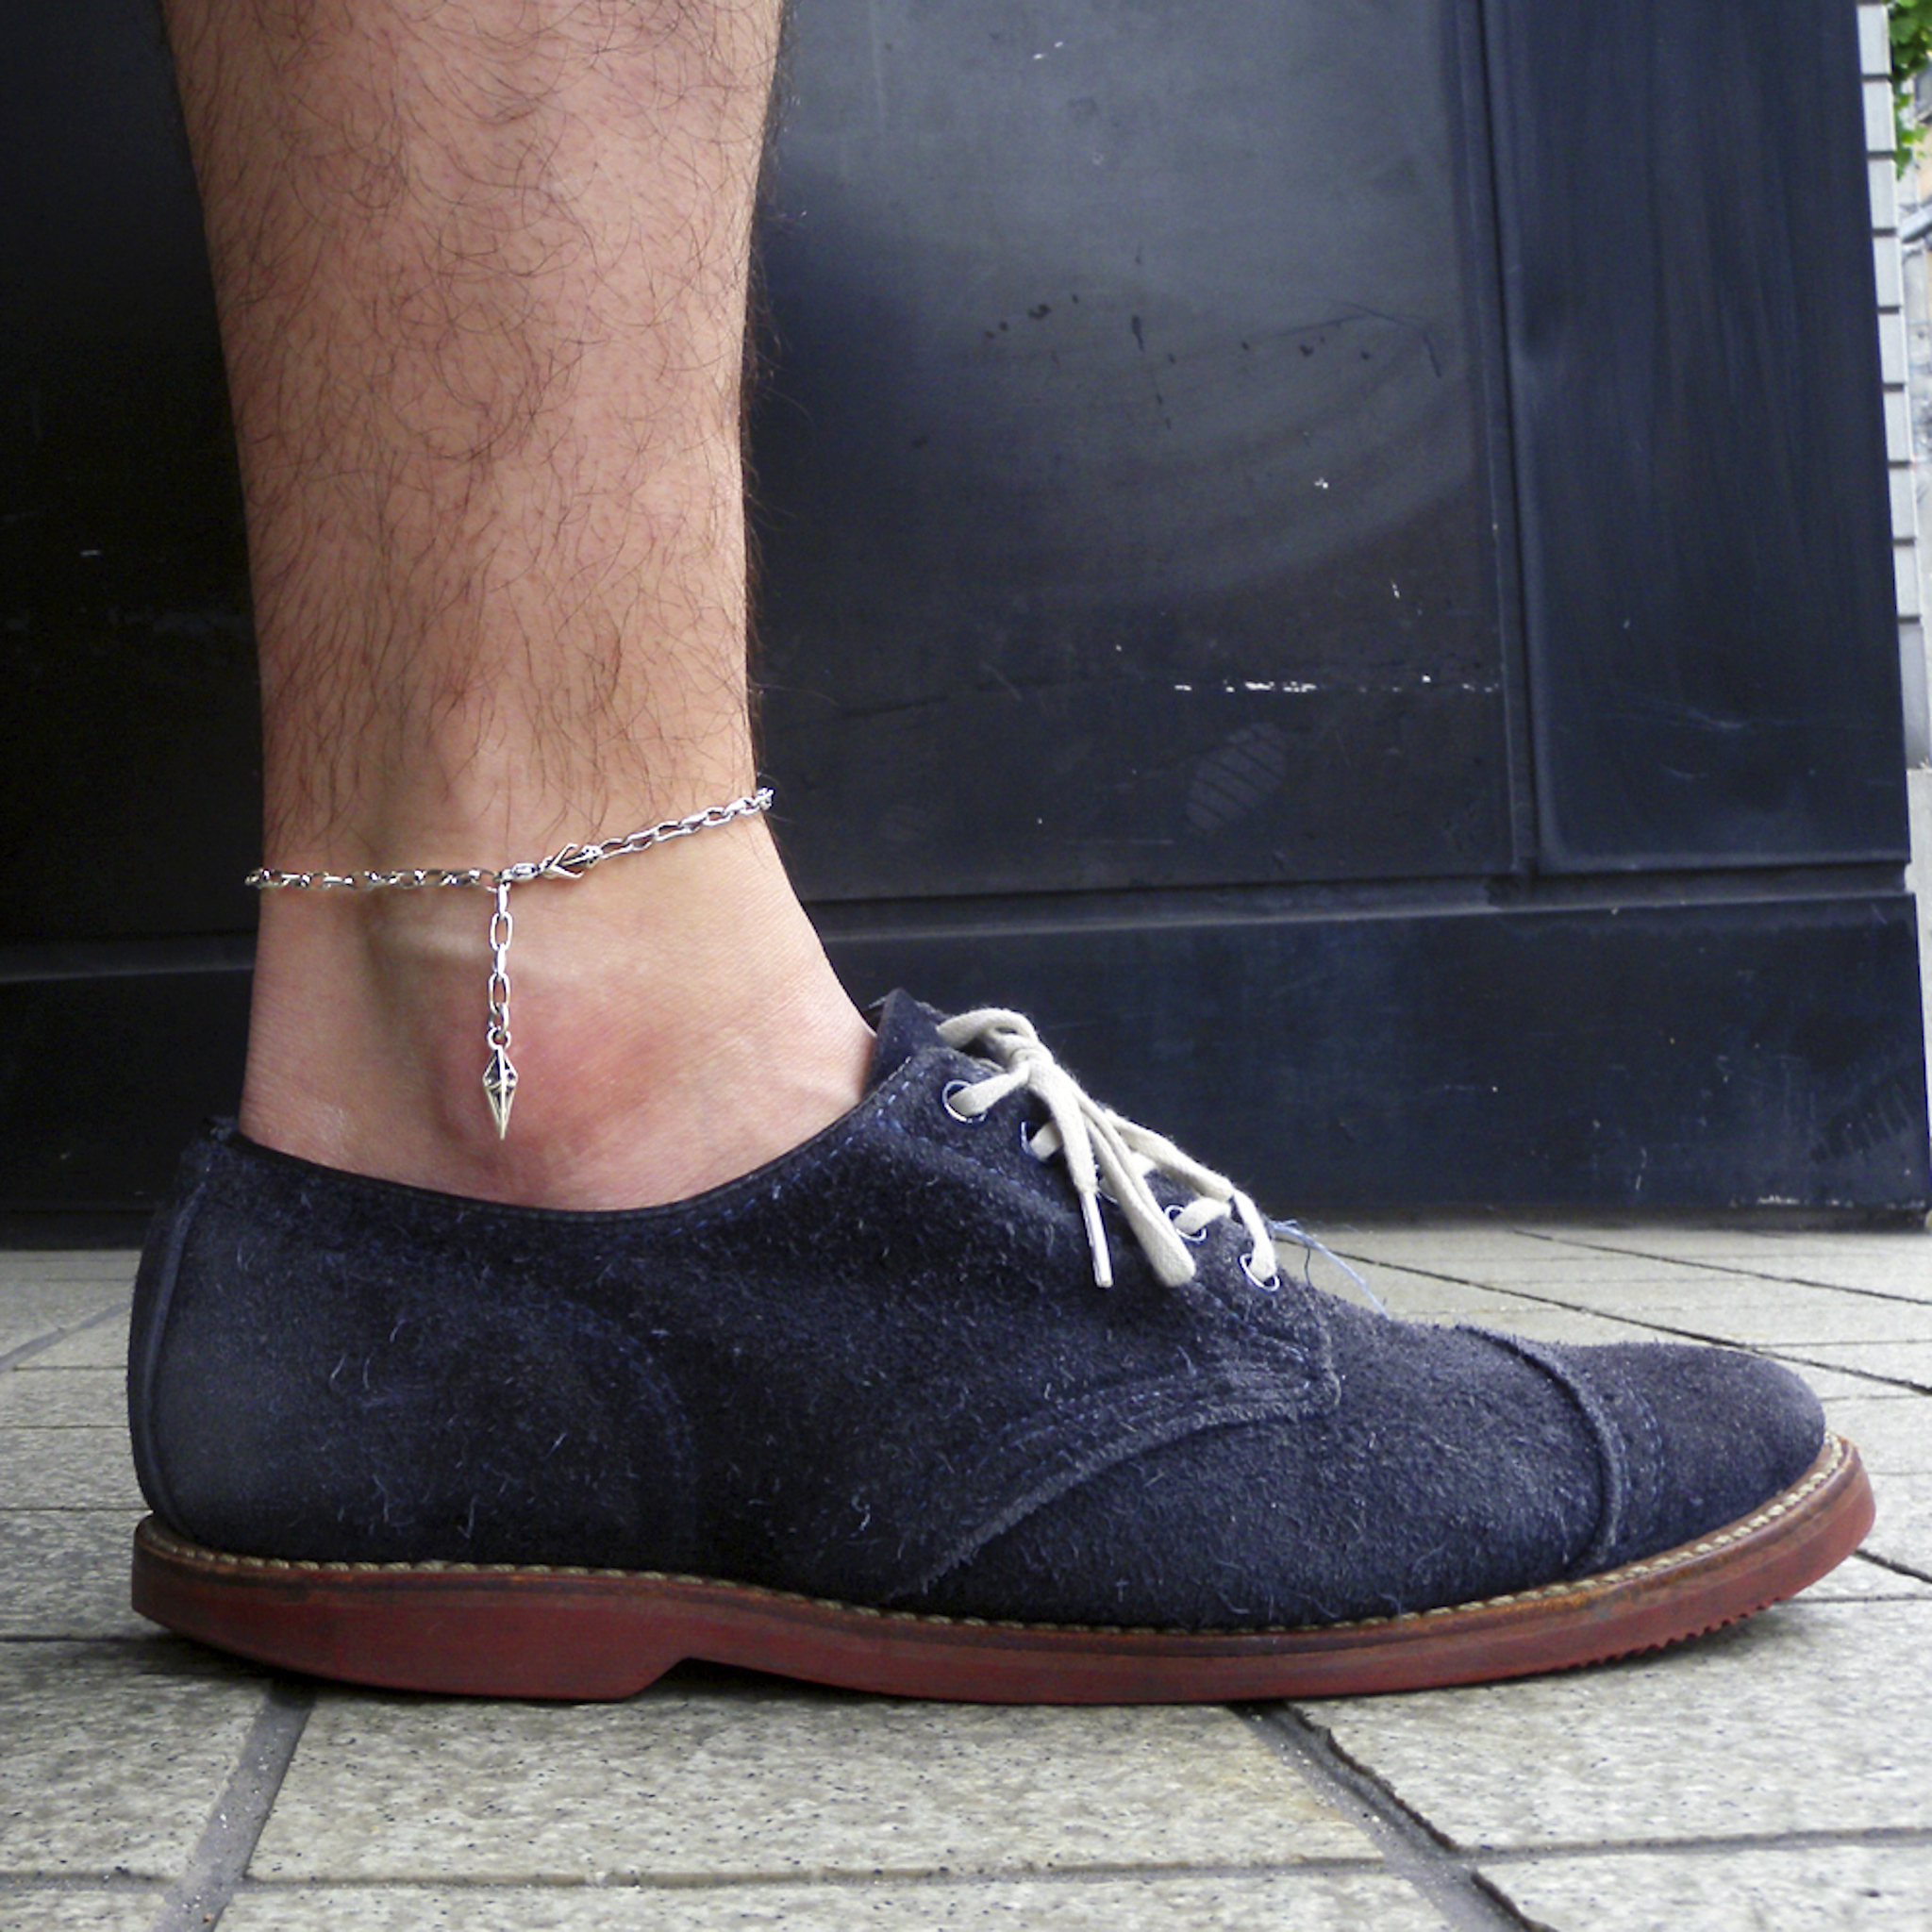 XX006/M's collection ANKLET アンクレット